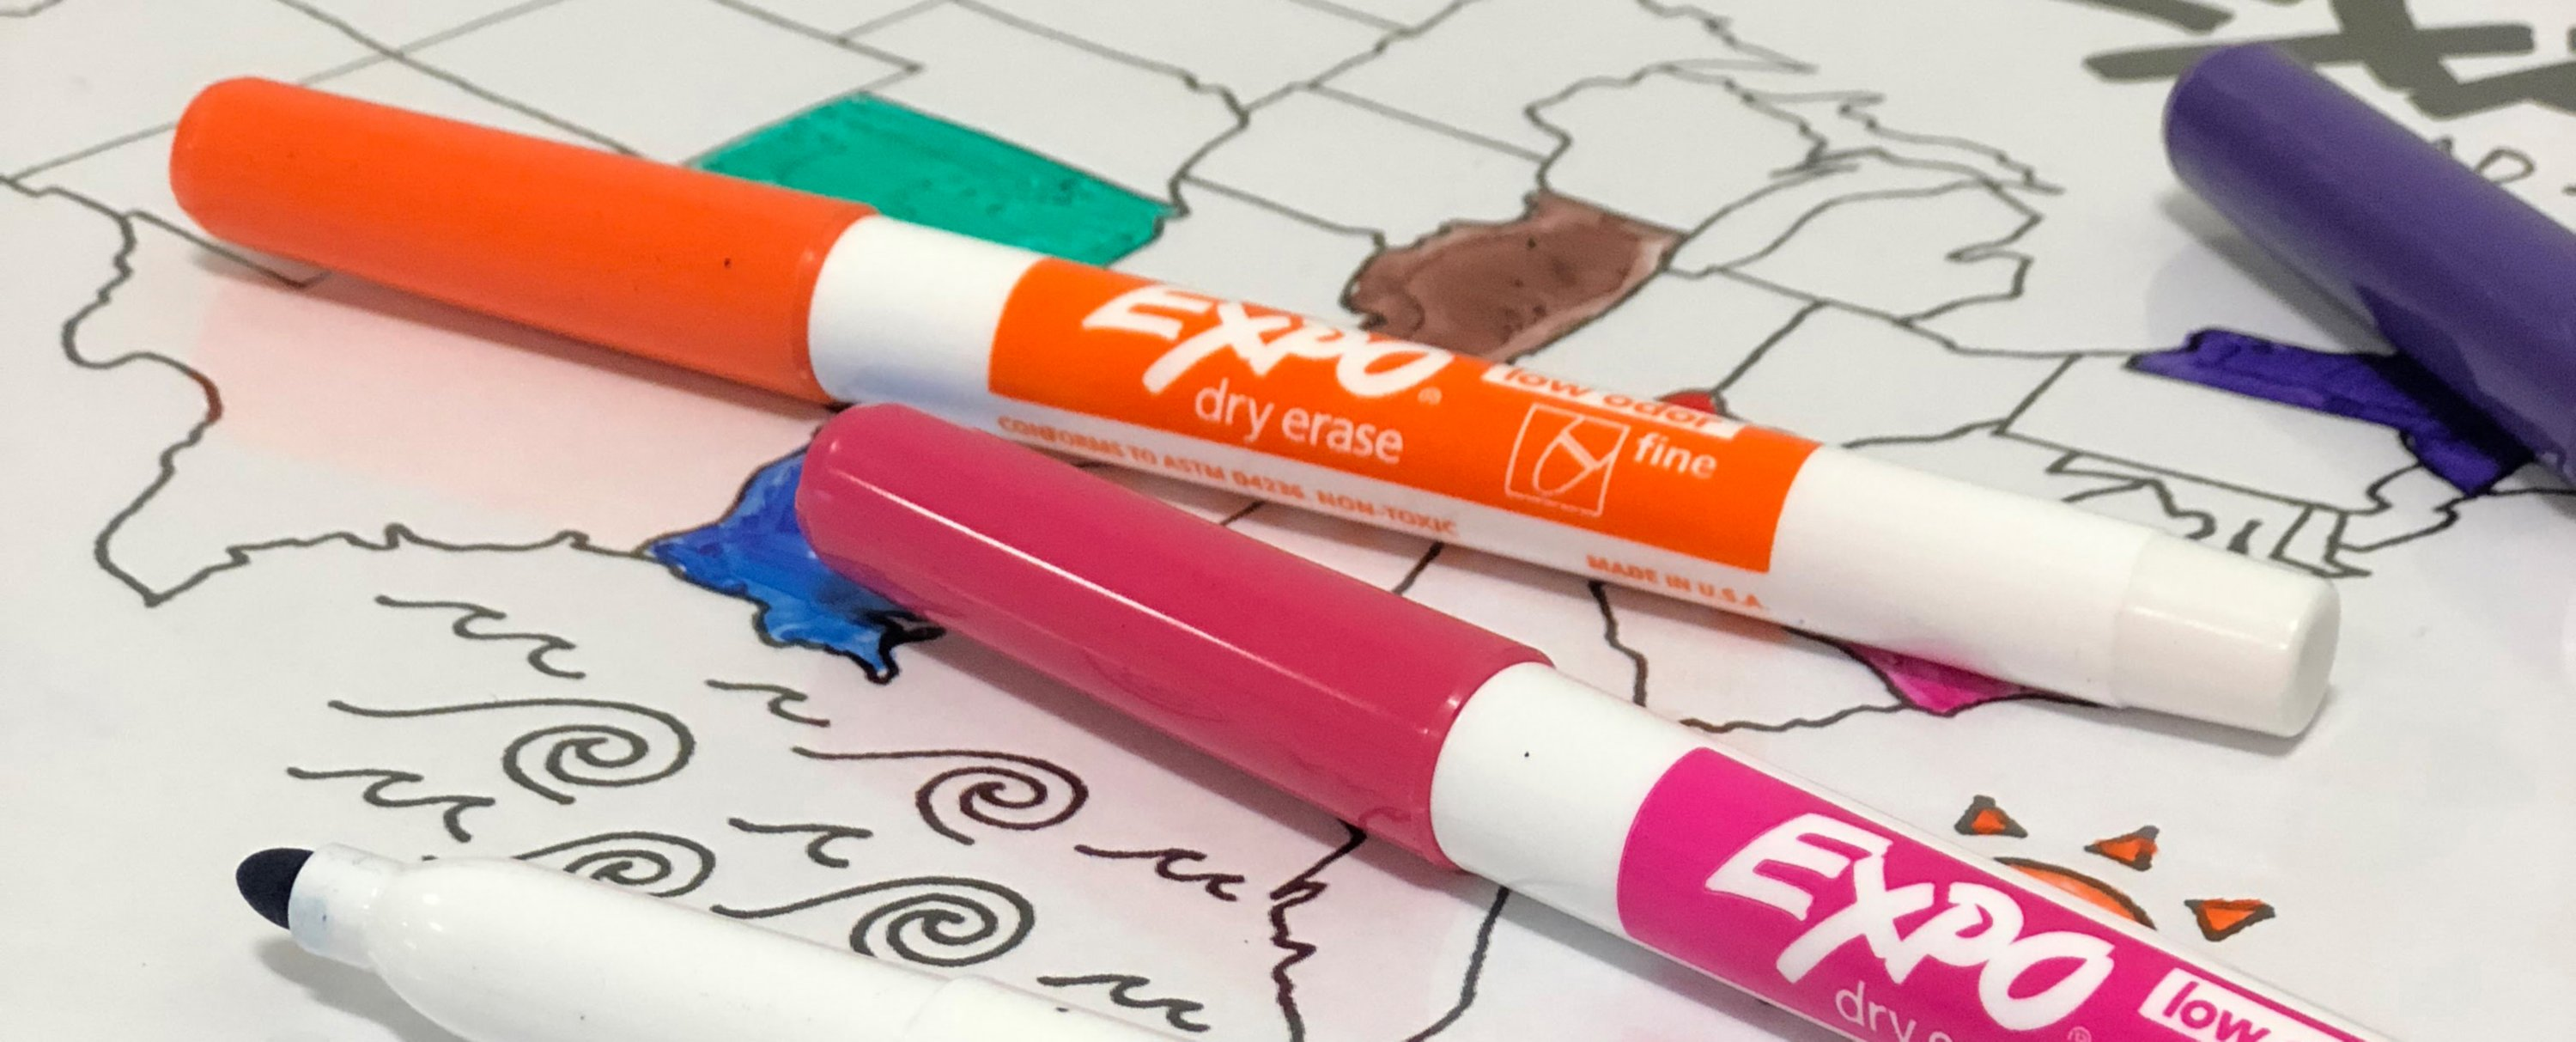 expo-road-trip-map-with-fine-expo-markers